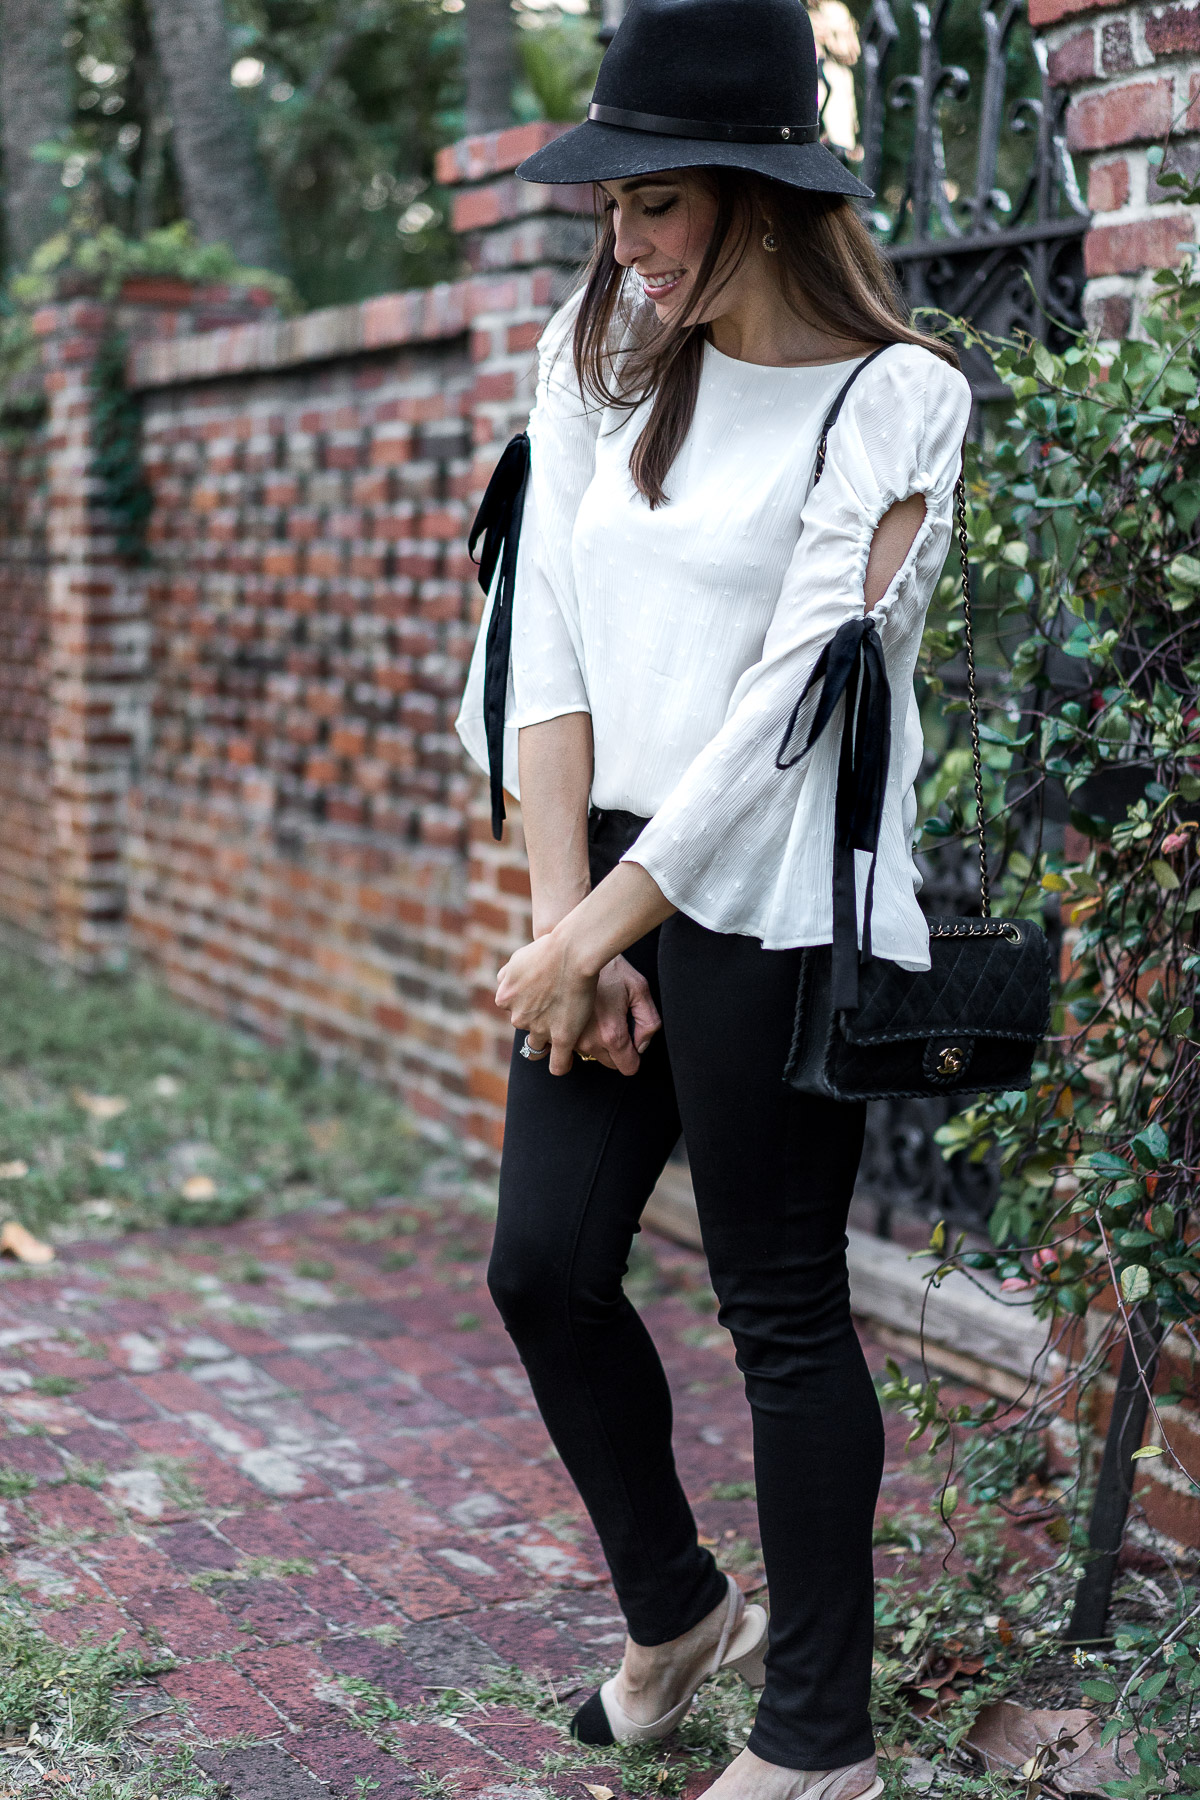 Pretty Club Monaco bell sleeve top with black ribbon tie styled by South Florida blogger Amanda of A Glam Lifestyle worn with Chanel suede bag and black AG Leggings jeans